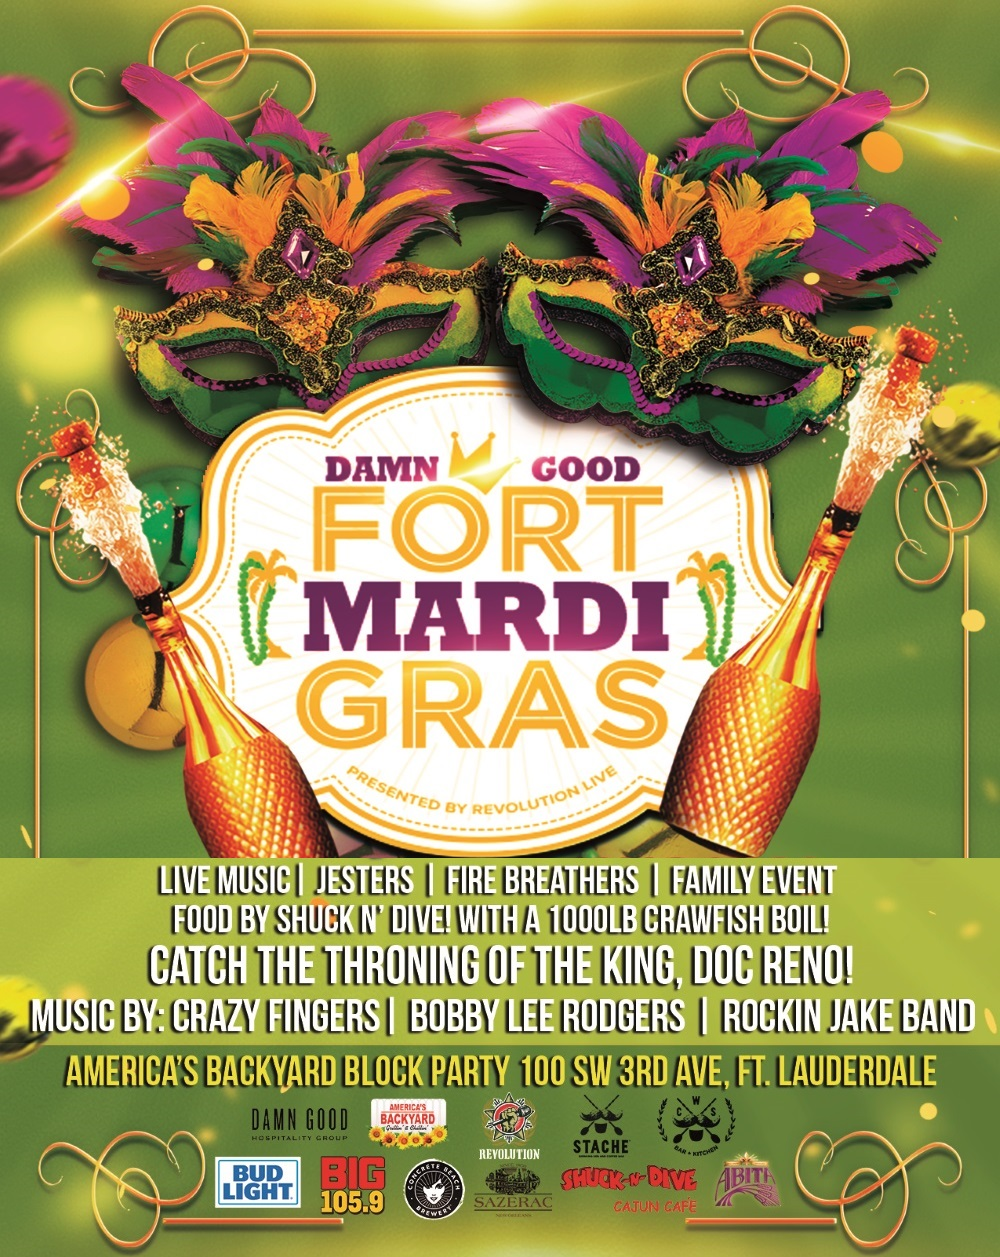 Image of the Damn Good Fort Mardi Gras Poster